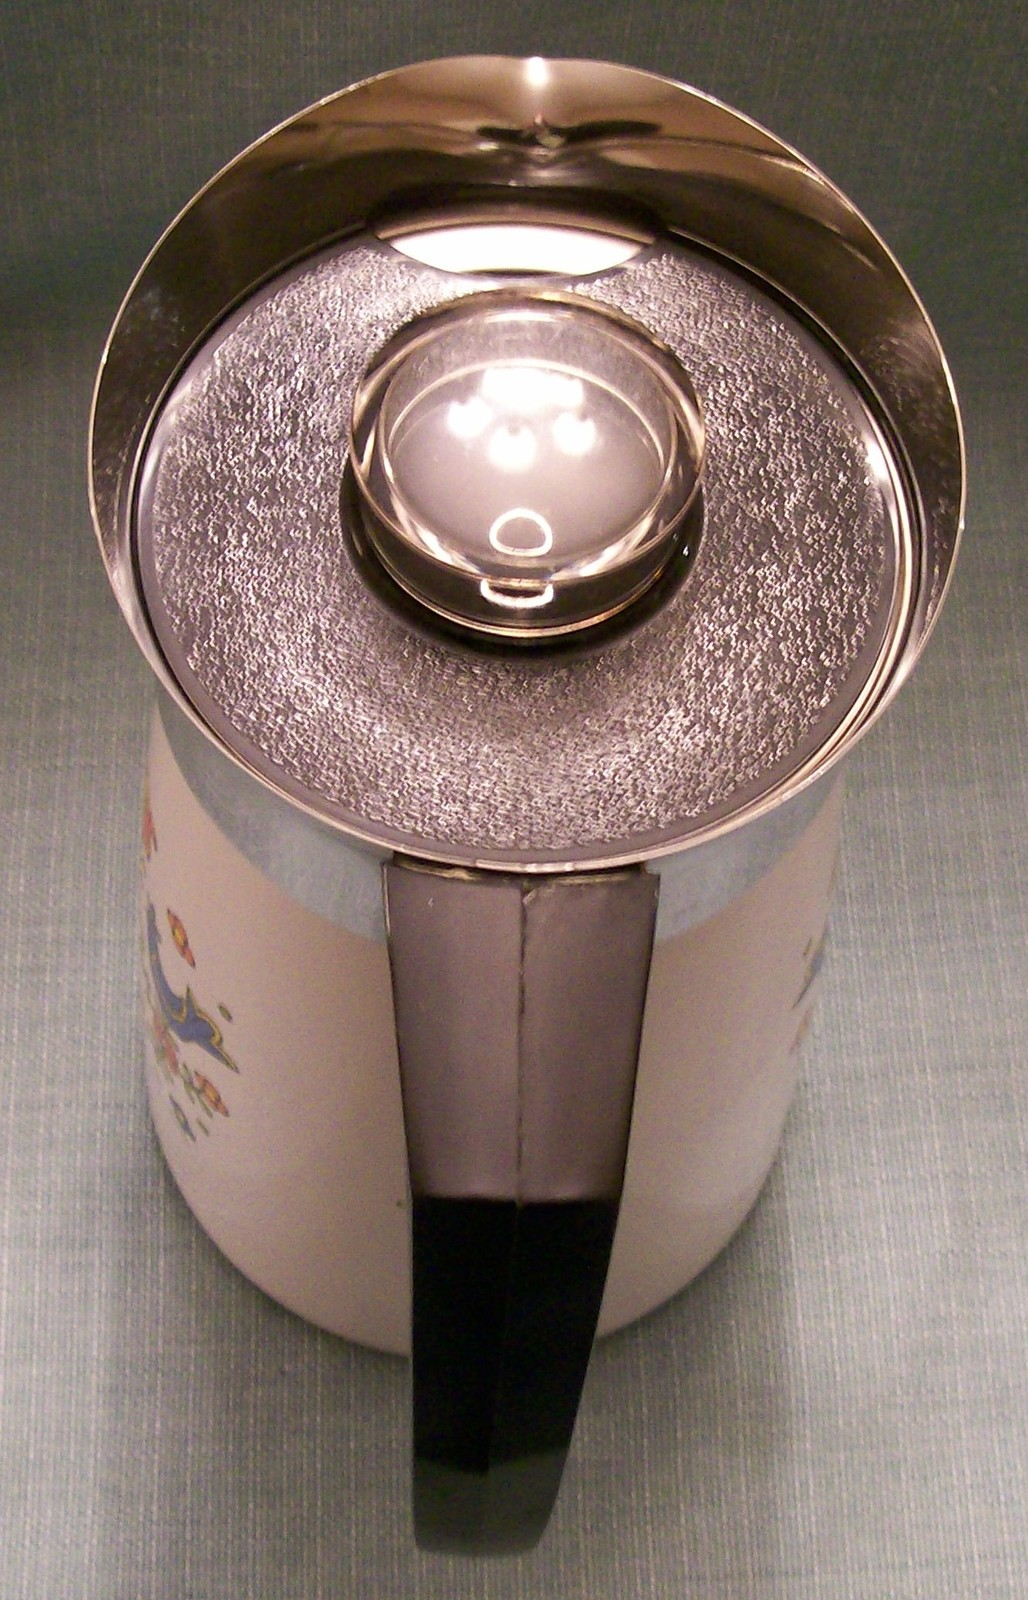 Vtg Corning COUNTRY FESTIVAL Friendship Stove Top 10 Cup Percolator P149 Birds image 13